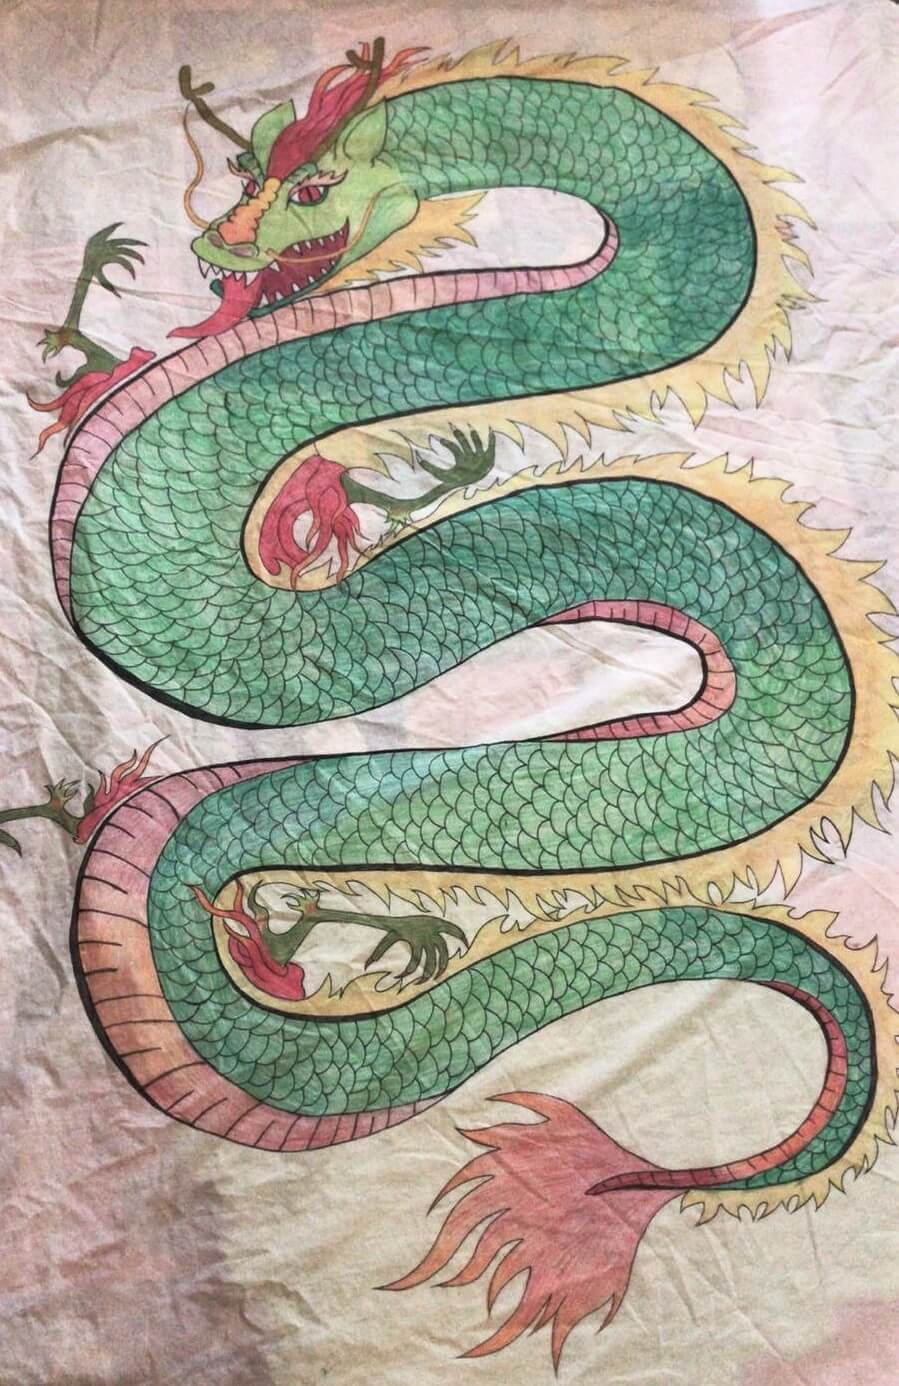 04: A banner made by a member of Swansea Women's Group for the Chinese New Year festival which was cancelled due to the pandemic